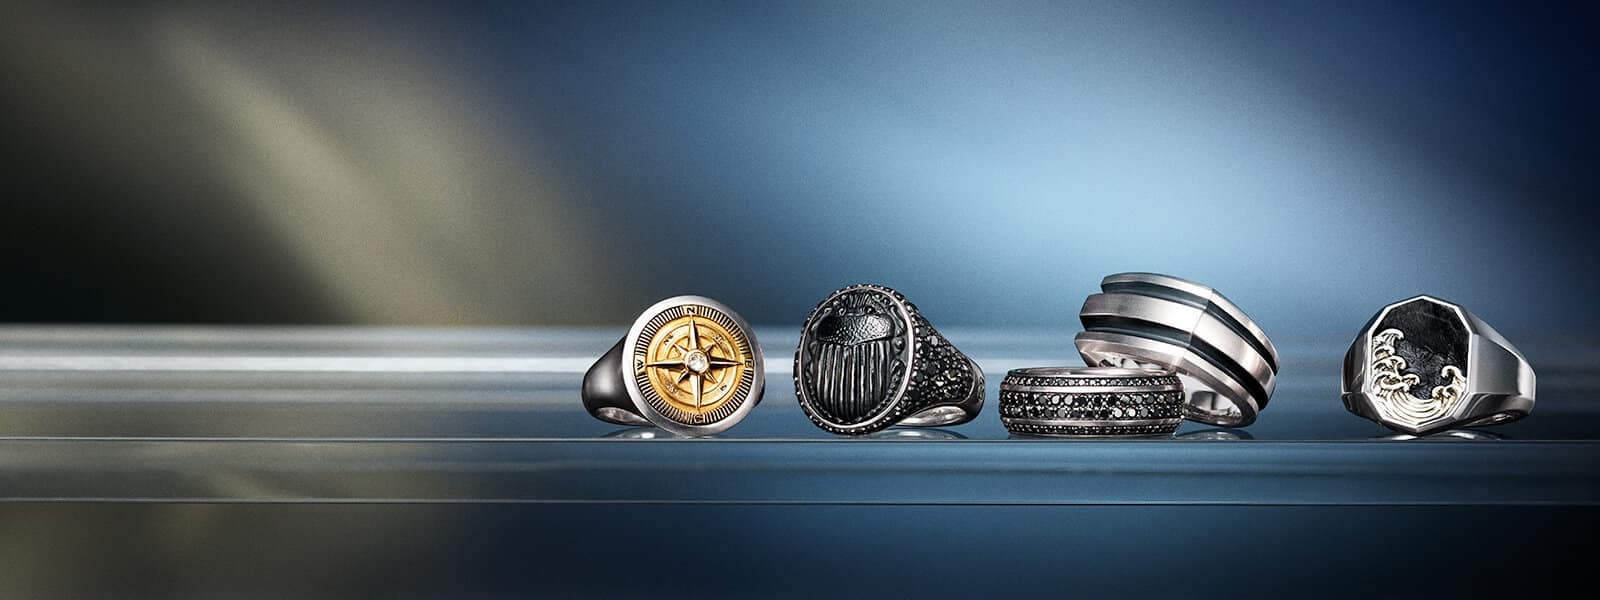 A color photograph shows a horizontal row of David Yurman men's rings from the Maritime®, Petrvs®, Beveled Deco and Waves collections atop and in front of reflective surfaces with angular, multi-colored reflections of light. The Maritime® compass ring is crafted from sterling silver with 18K yellow gold and a white diamond center stone. The Petrvs® scarab ring is crafted from sterling silver with black onyx and pavé black diamonds. The Beveled band ring is crafted from 18K white gold with black diamonds. The Deco cigar band ring is crafted from sterling silver. The Waves signet ring is crafted from sterling silver with forged carbon.